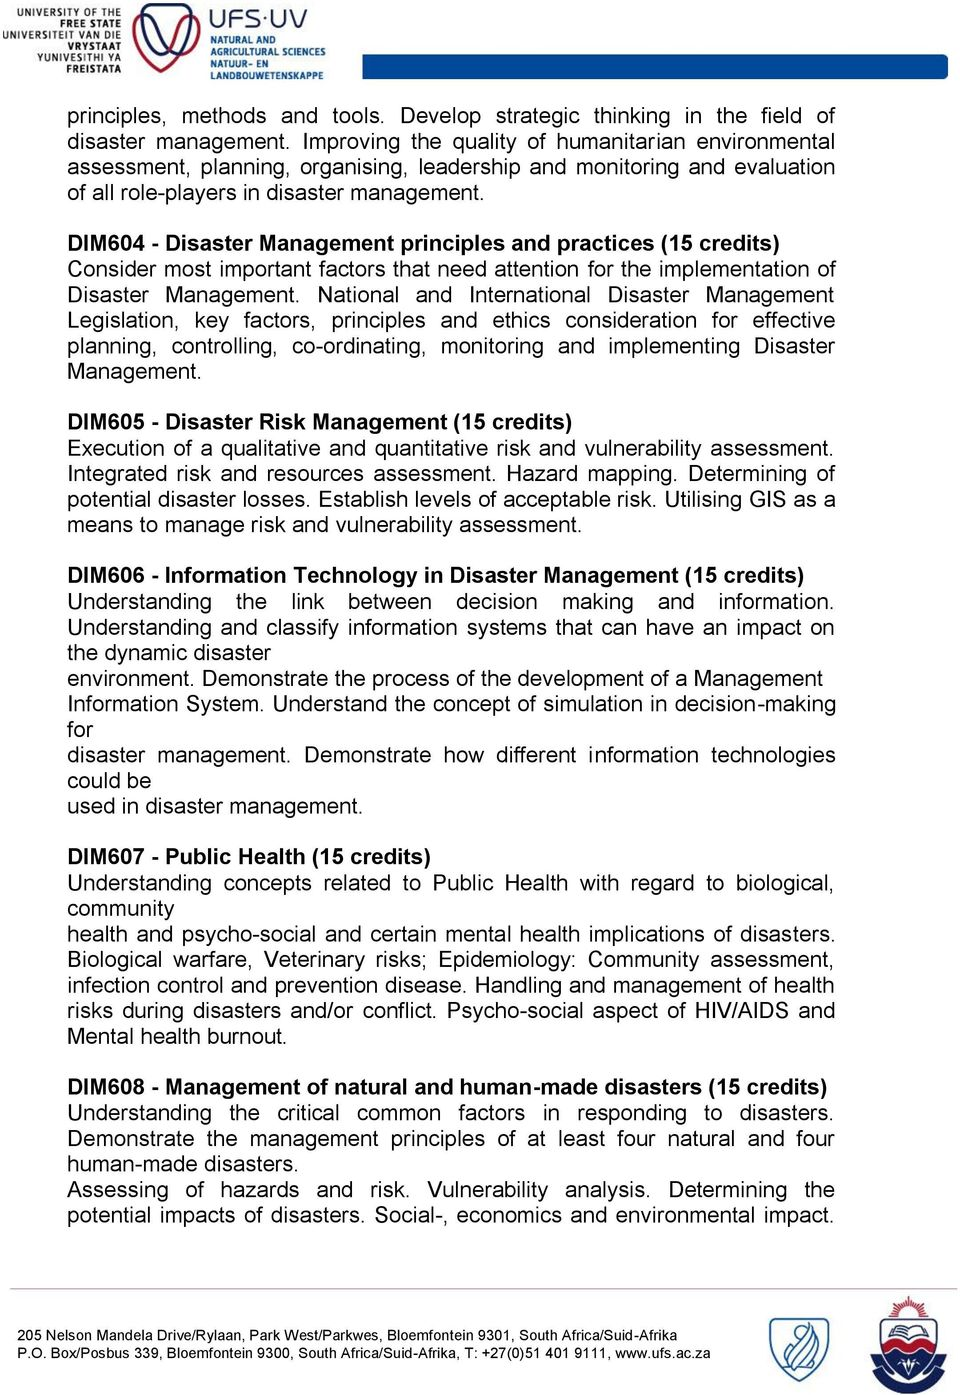 DIM604 - Disaster Management principles and practices (15 credits) Consider most important factors that need attention for the implementation of Disaster Management.